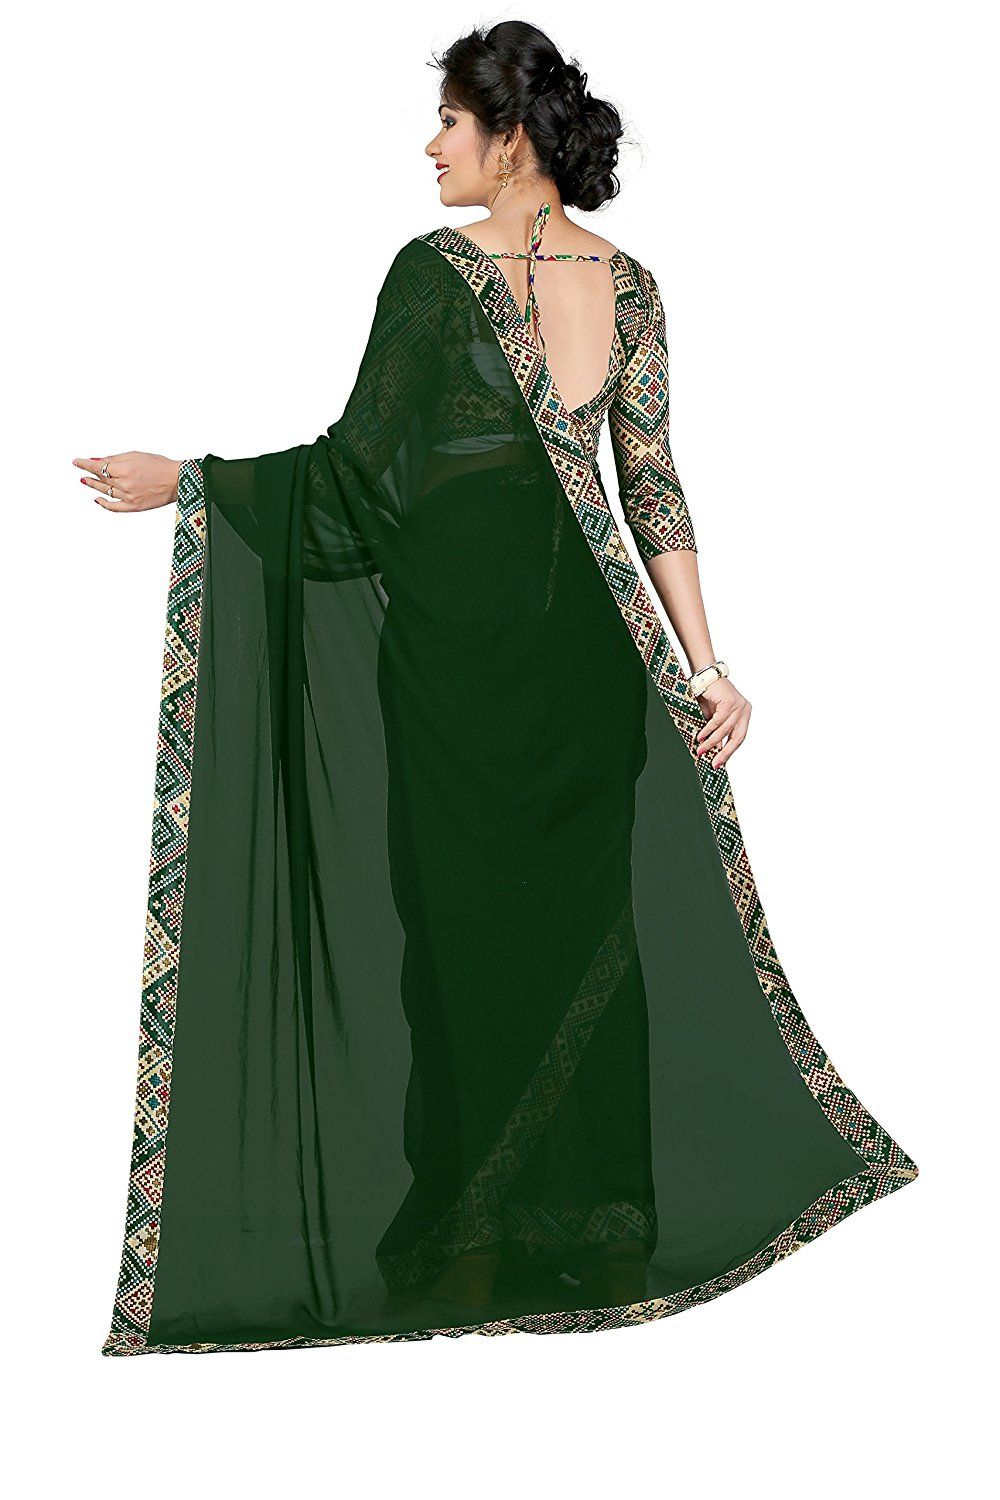 811fbe64678c63 Georgette Plain Saree - Pine Green  Amazon.in  Clothing   Accessories